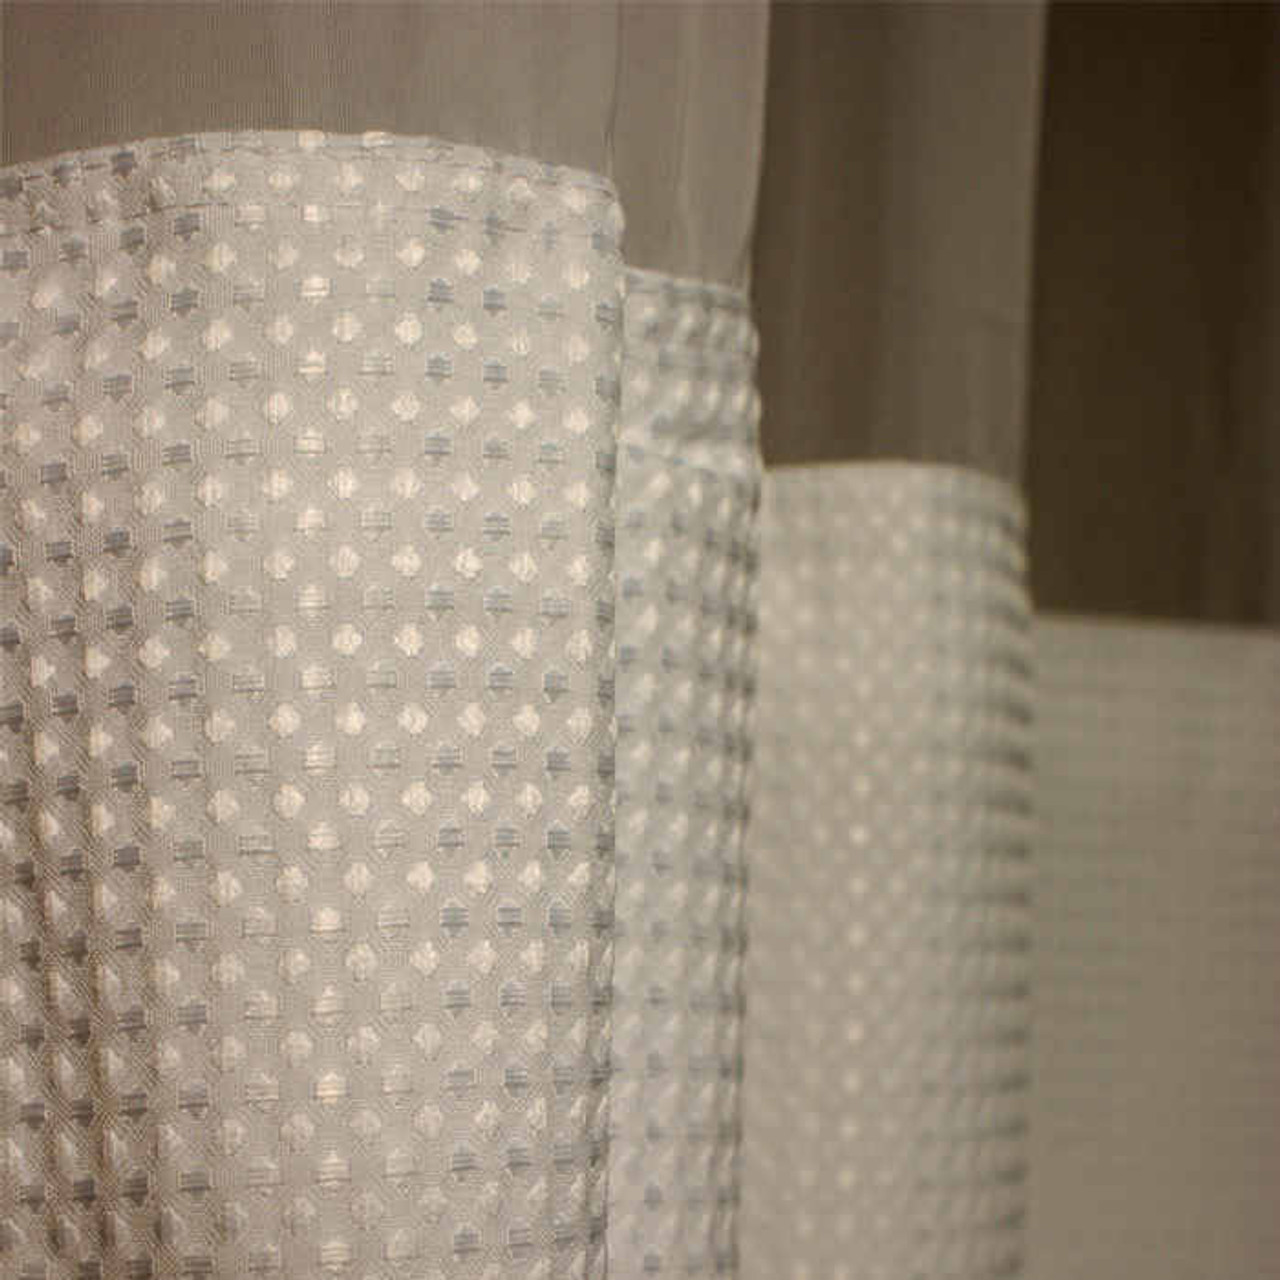 Kartri KARTRIor EMPIRE WAFFLE EZY-HANGor POLYESTER SHOWER CURTAIN W/ VOILE WINDOW and SNAP AWAY LINER 72X74 WHITE PACK OF 6